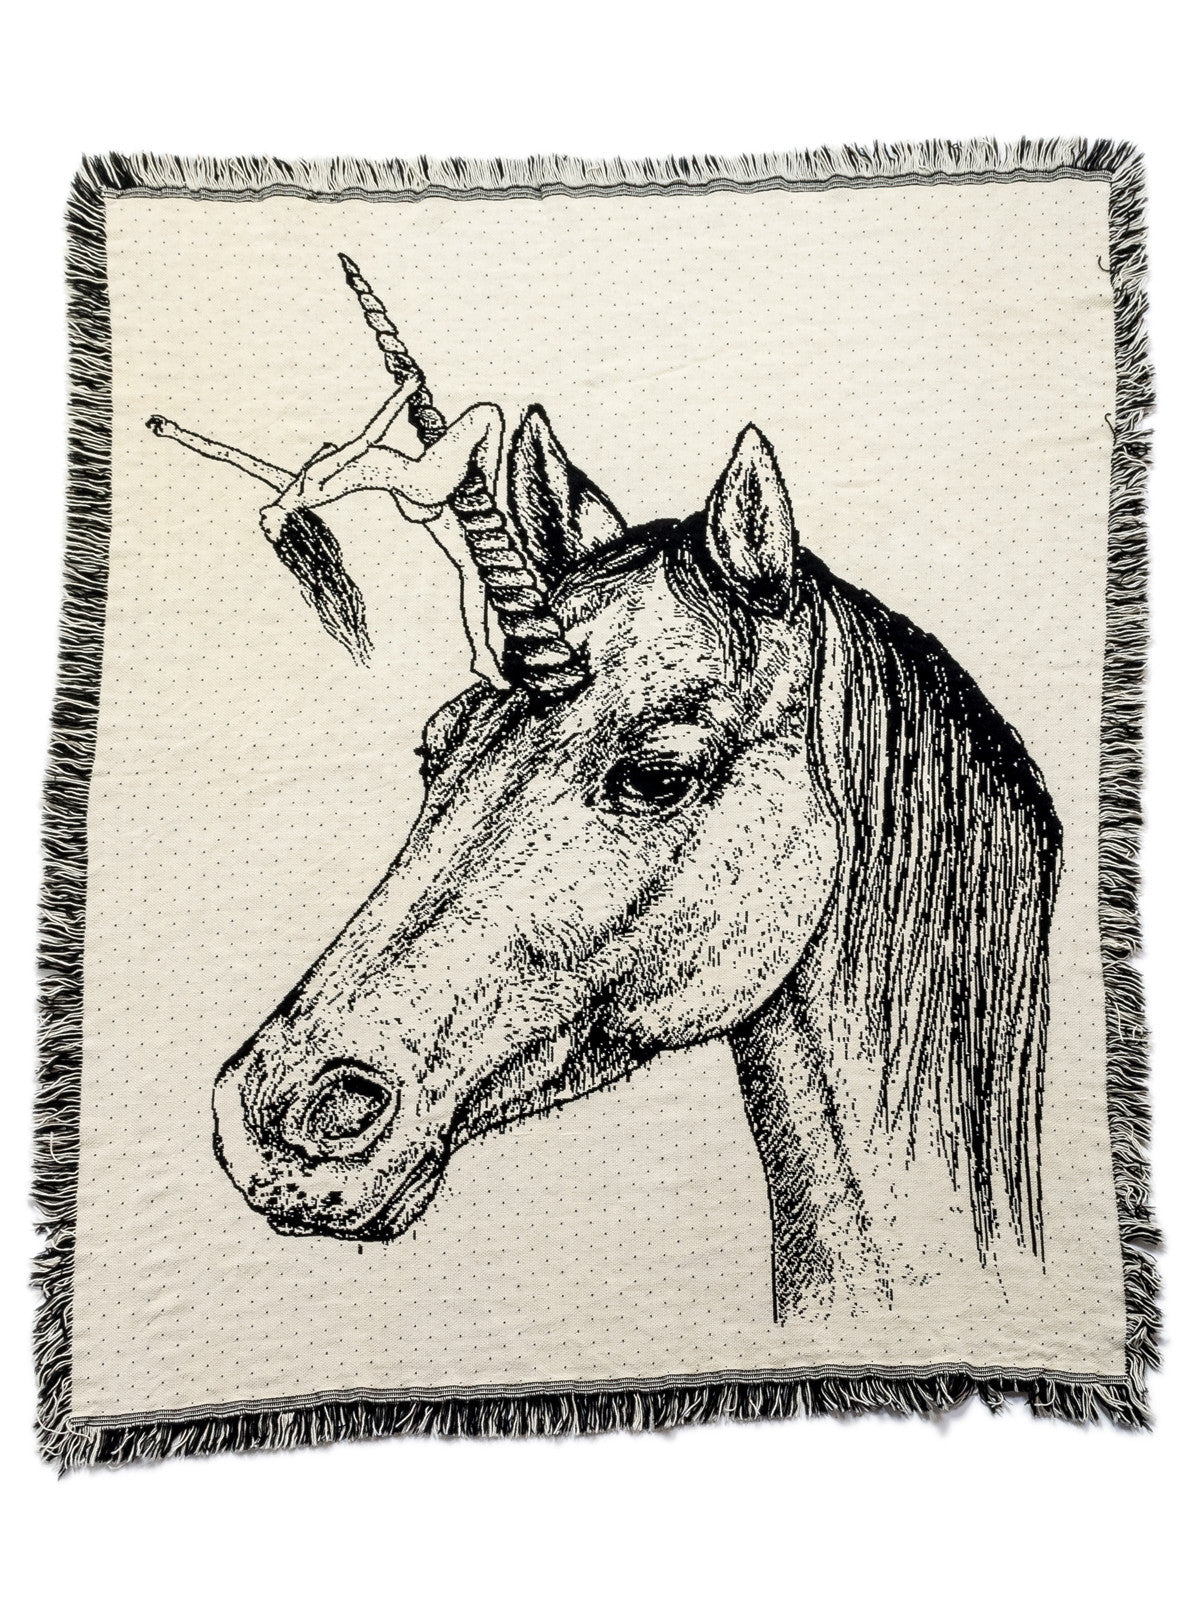 Melodie Perrault - Unicorn Throw Blanket Sample - Merch Limited